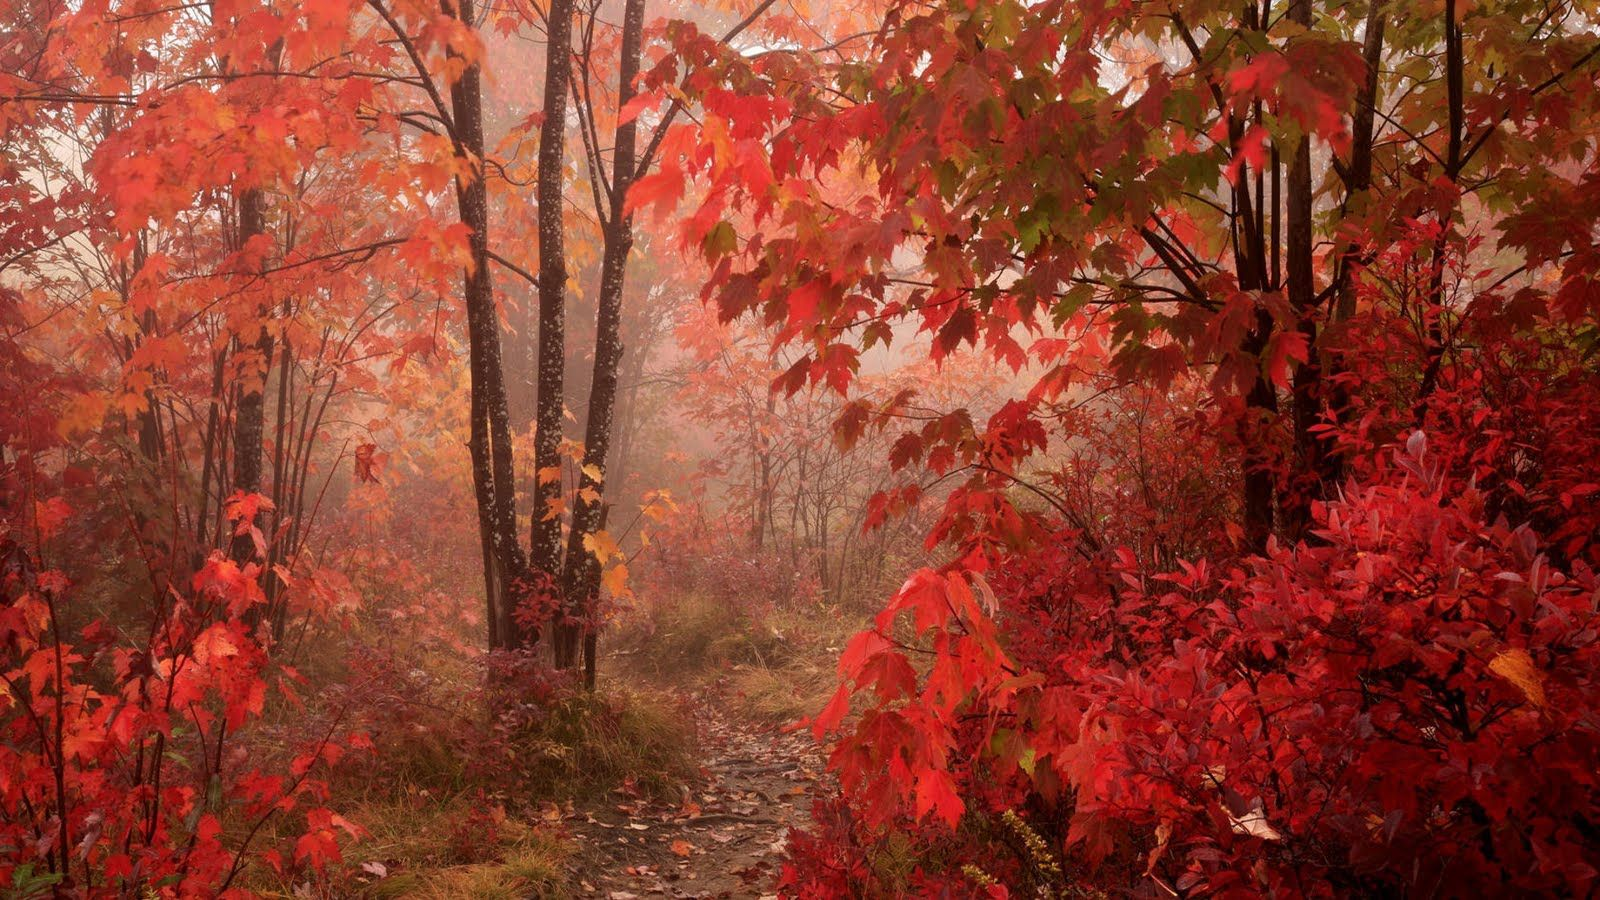 Pics photos hd wallpapers epic desktop s - Fall Backgrounds Fall Red Leaves Forest Autumn Hd Wallpapers Epic Desktop Backgrounds